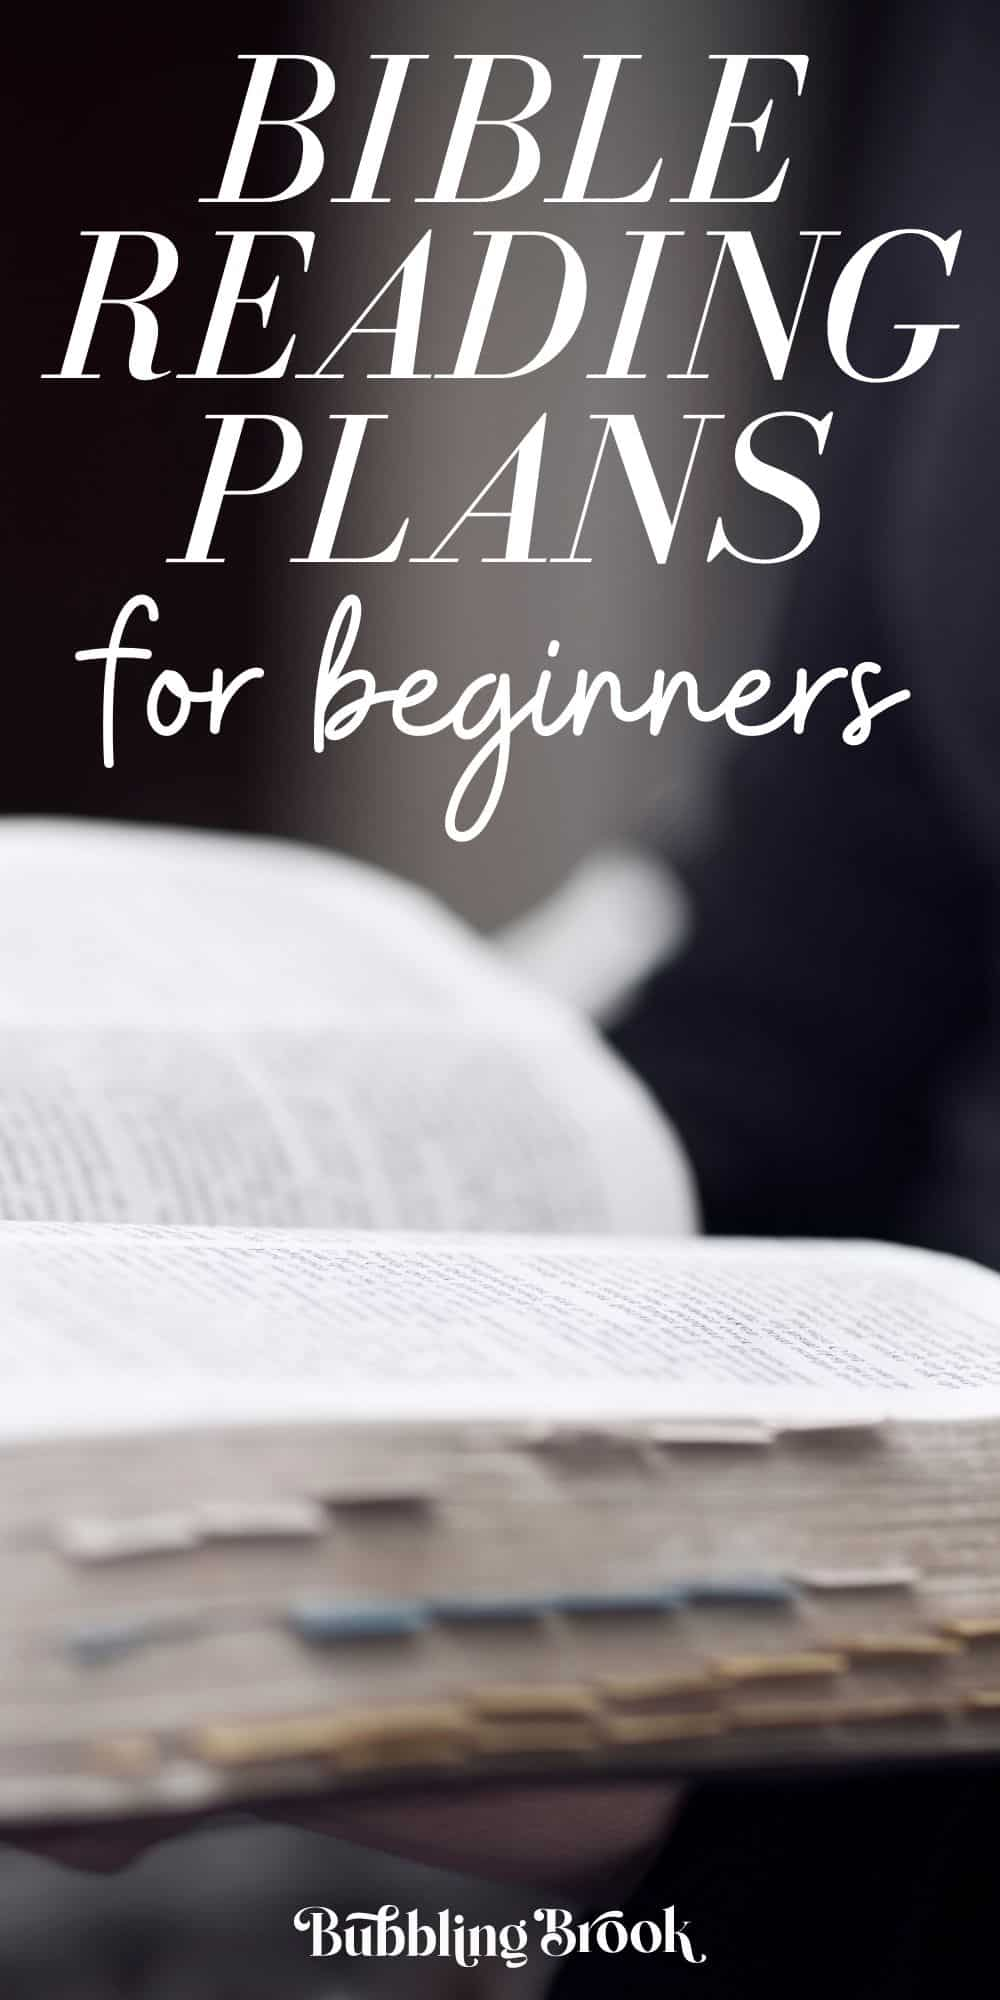 Bible reading plans for beginners